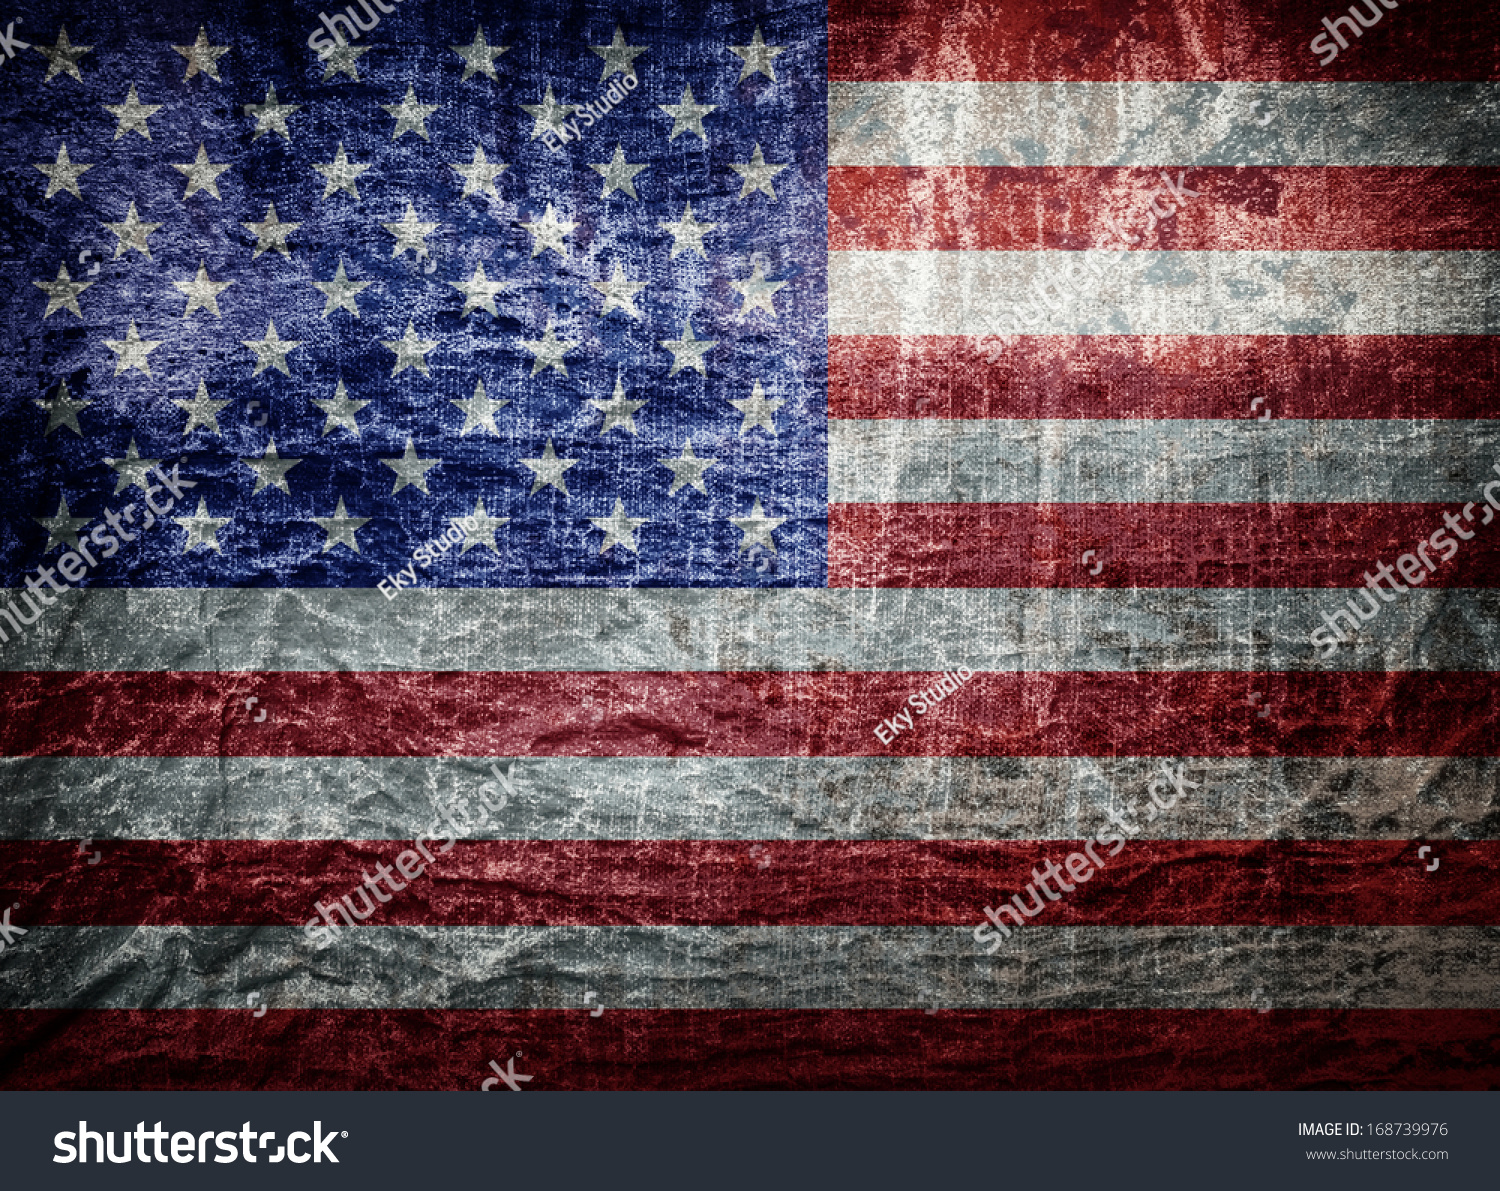 how old is american flag